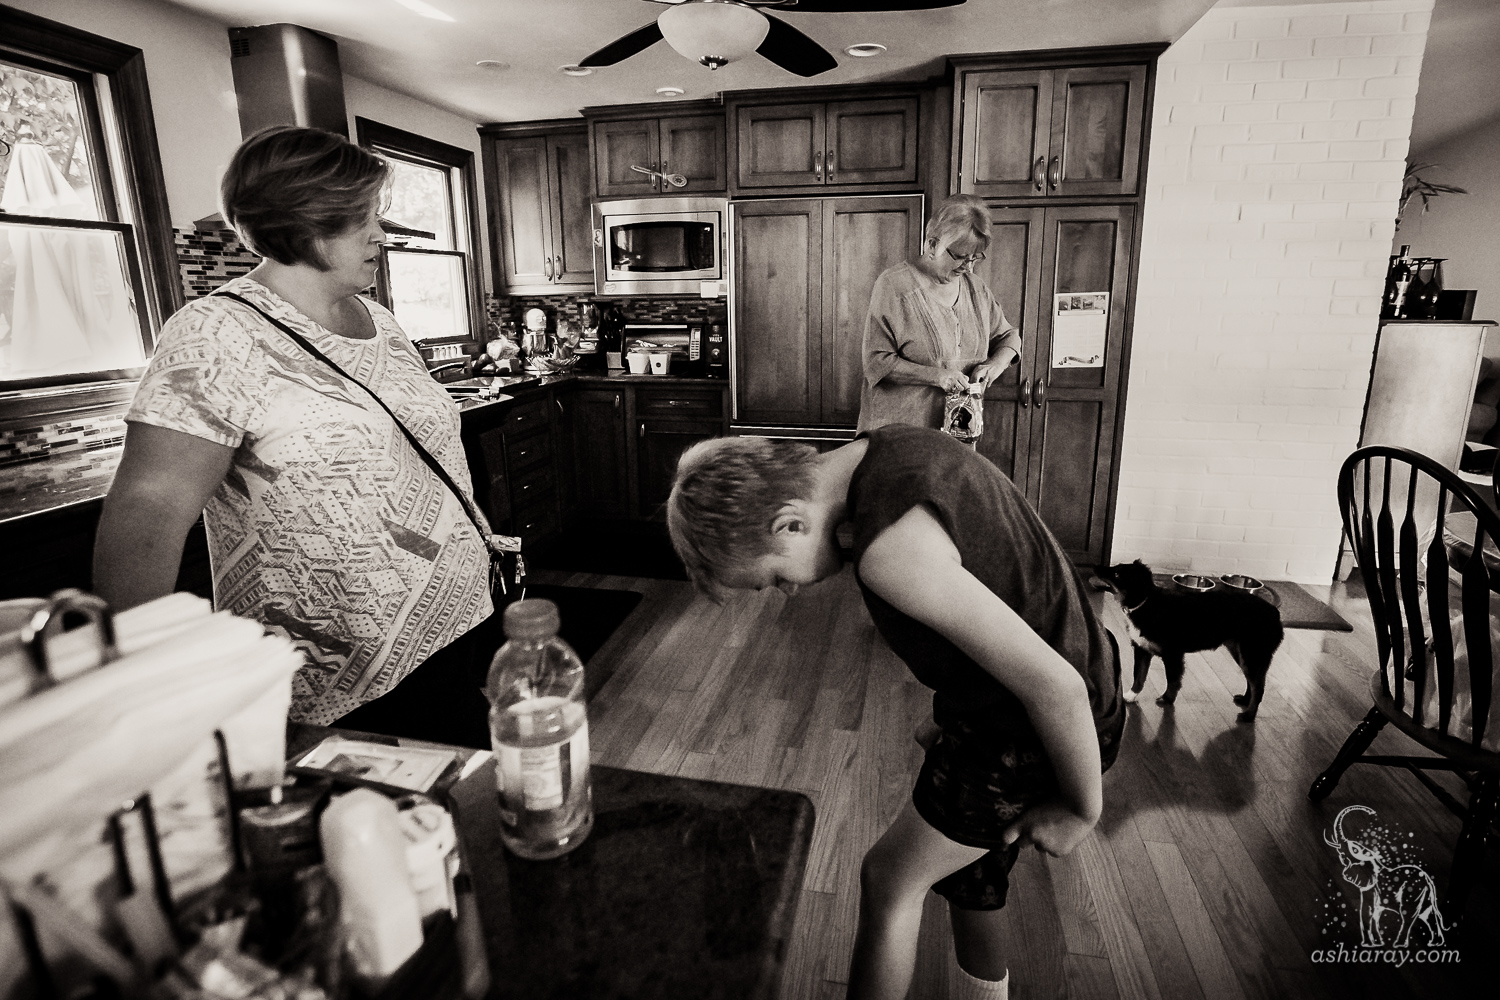 Grandmother, mother, son, and dog in kitchen